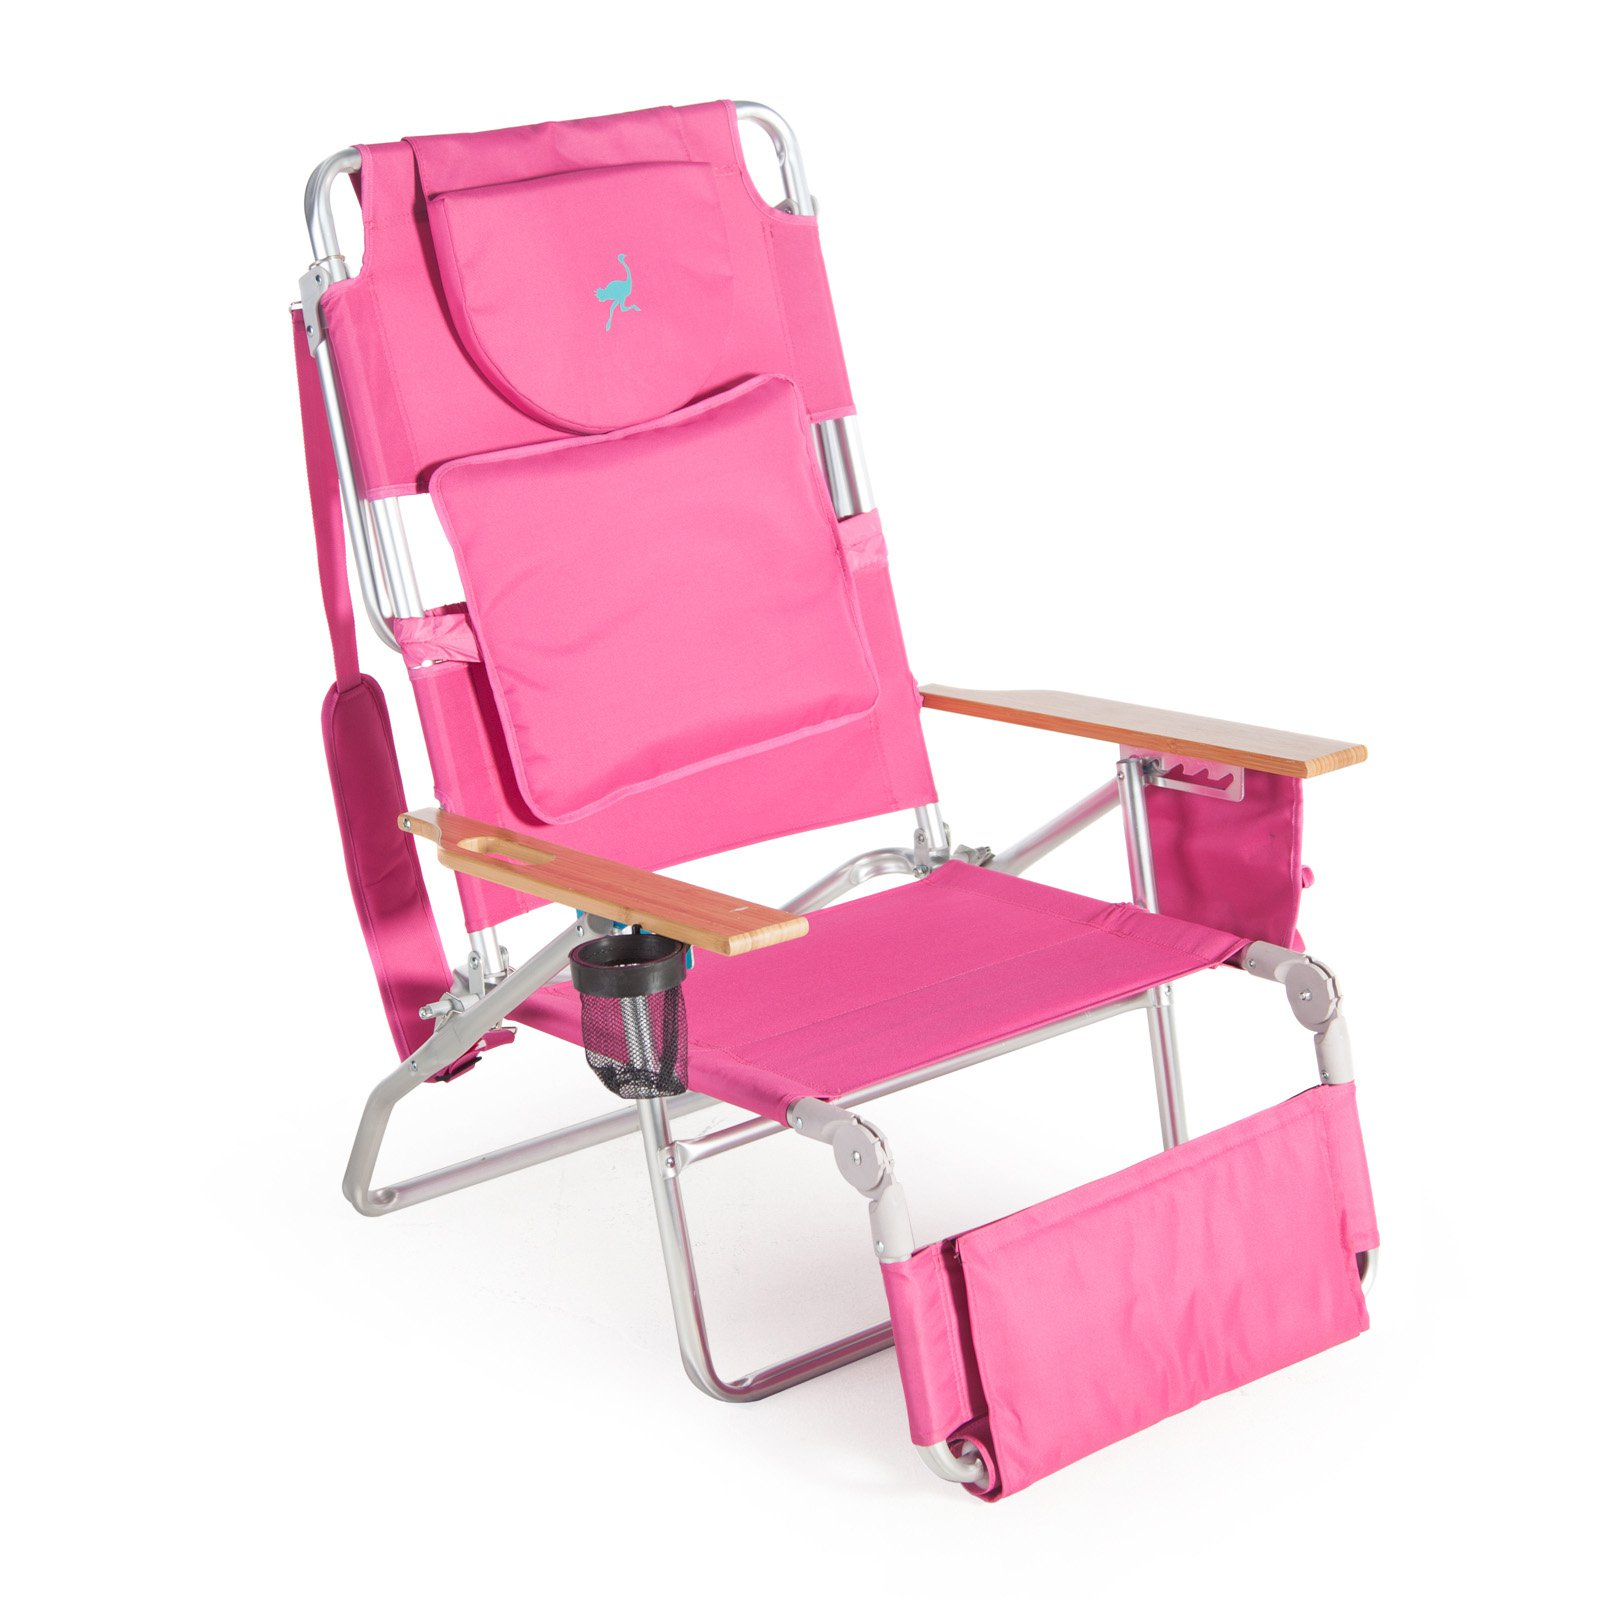 Deluxe Padded Ostrich 3-N-1 Beach Chair with FREE Towel